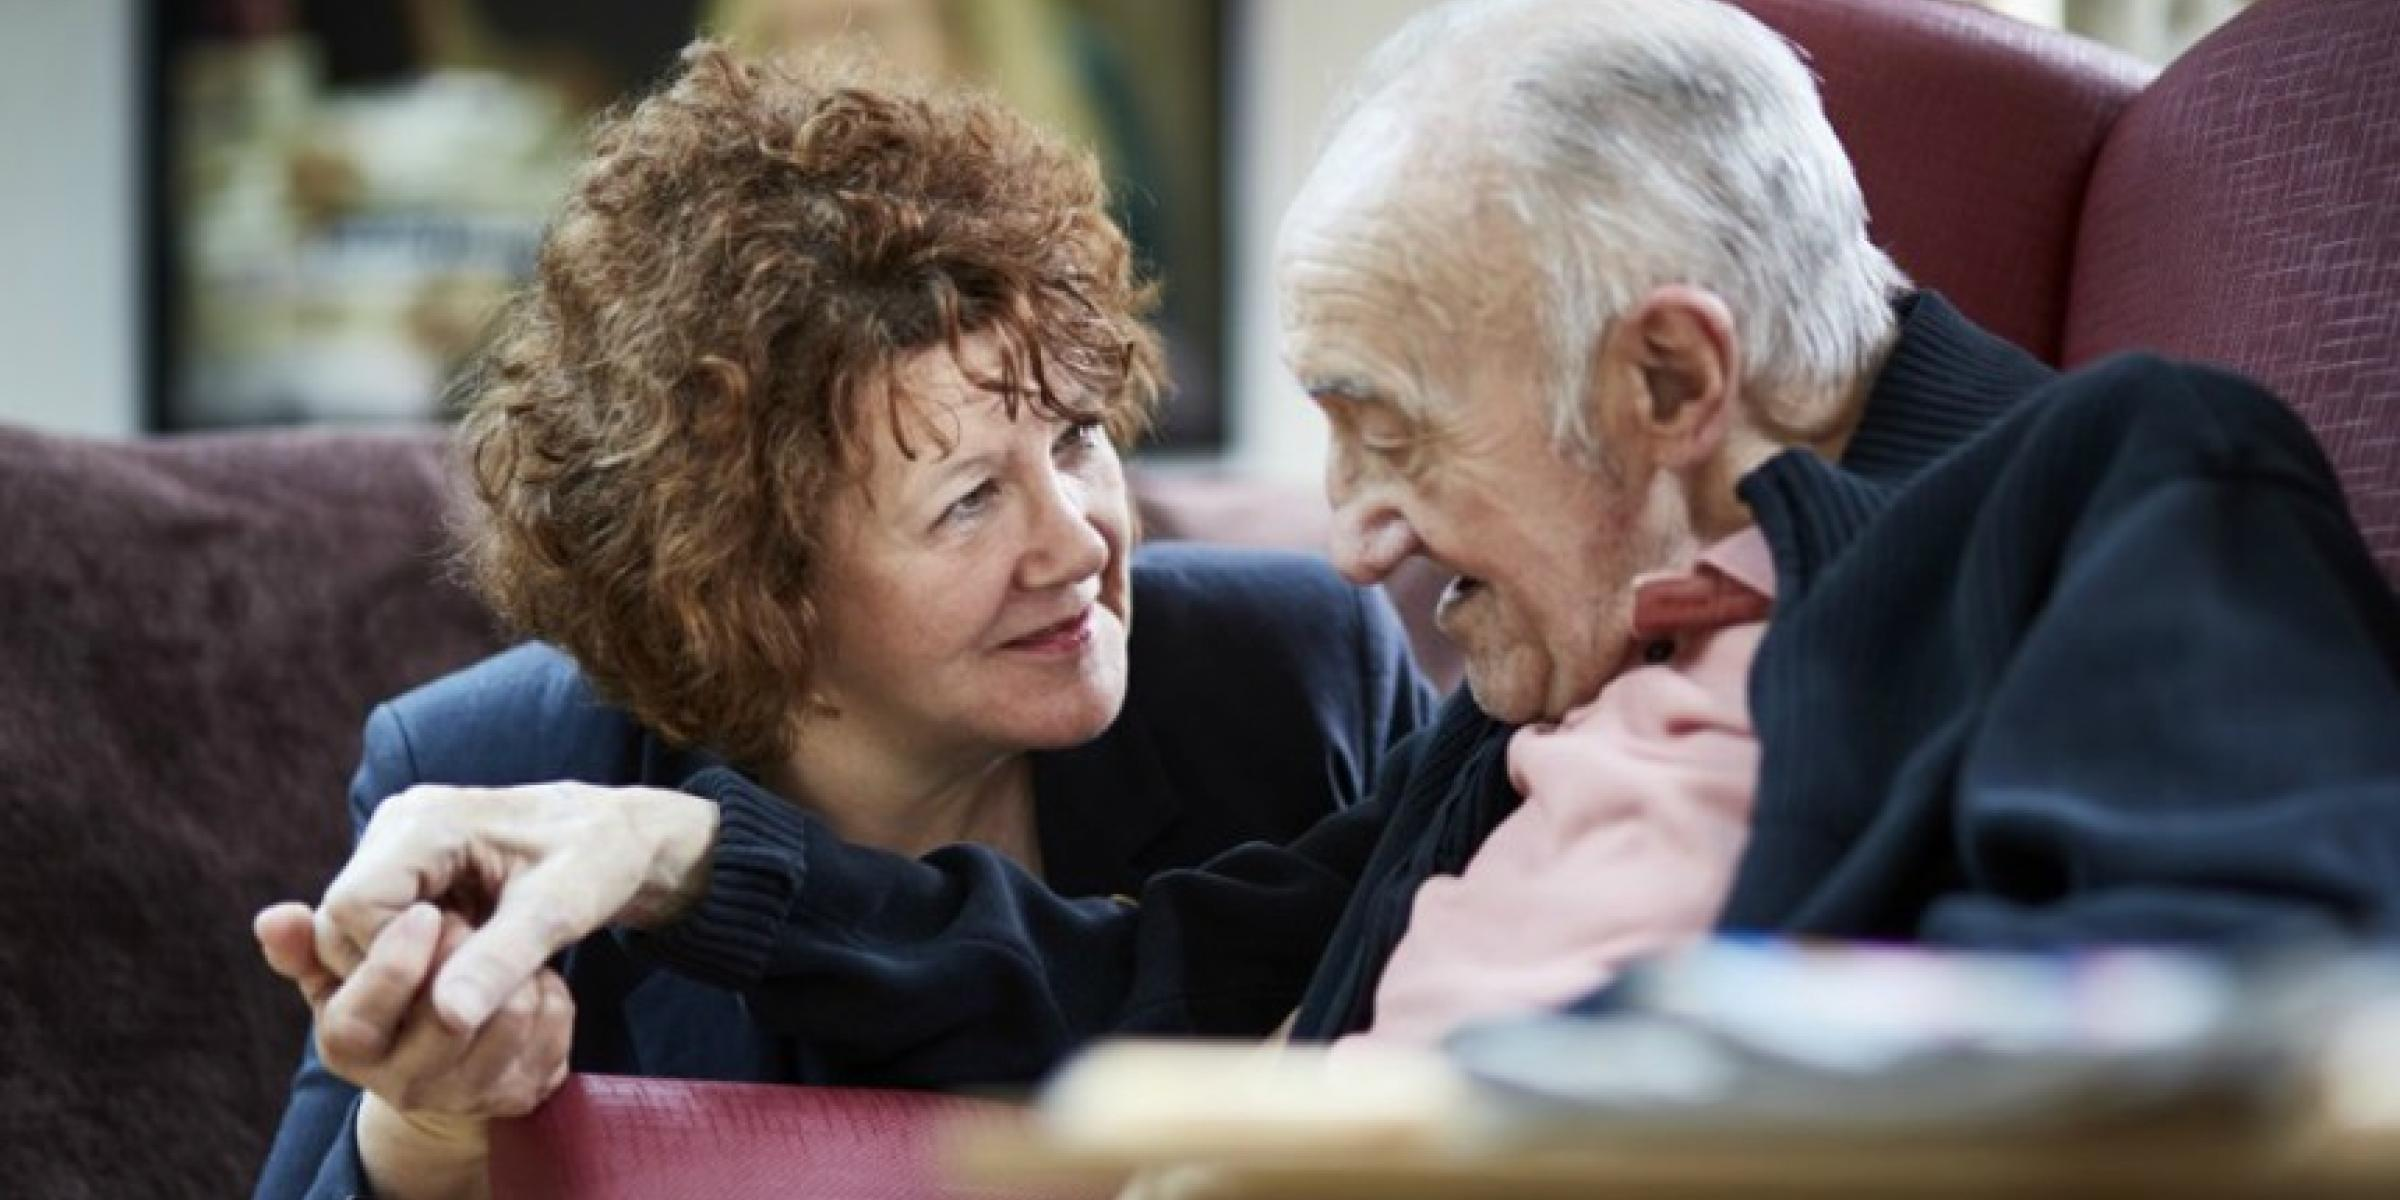 A person with dementia and their carer